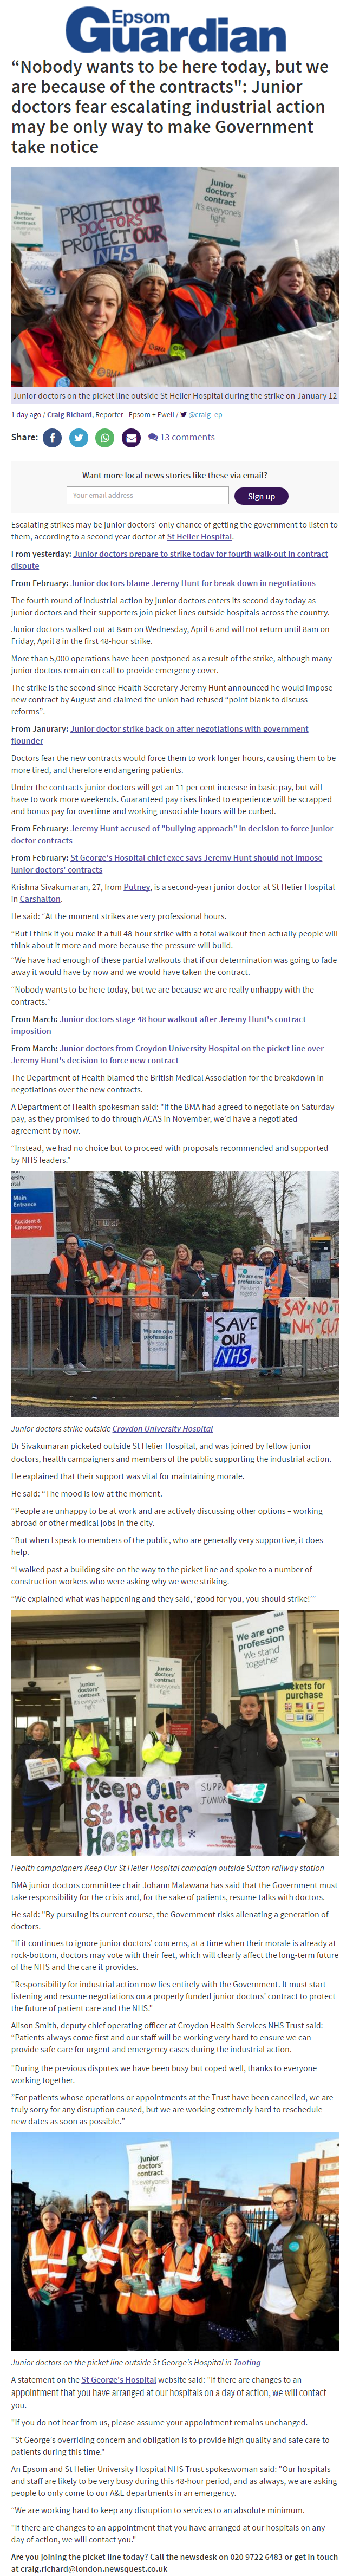 2016 04 07 - Epsom Guardian - Junior Doctors Strike